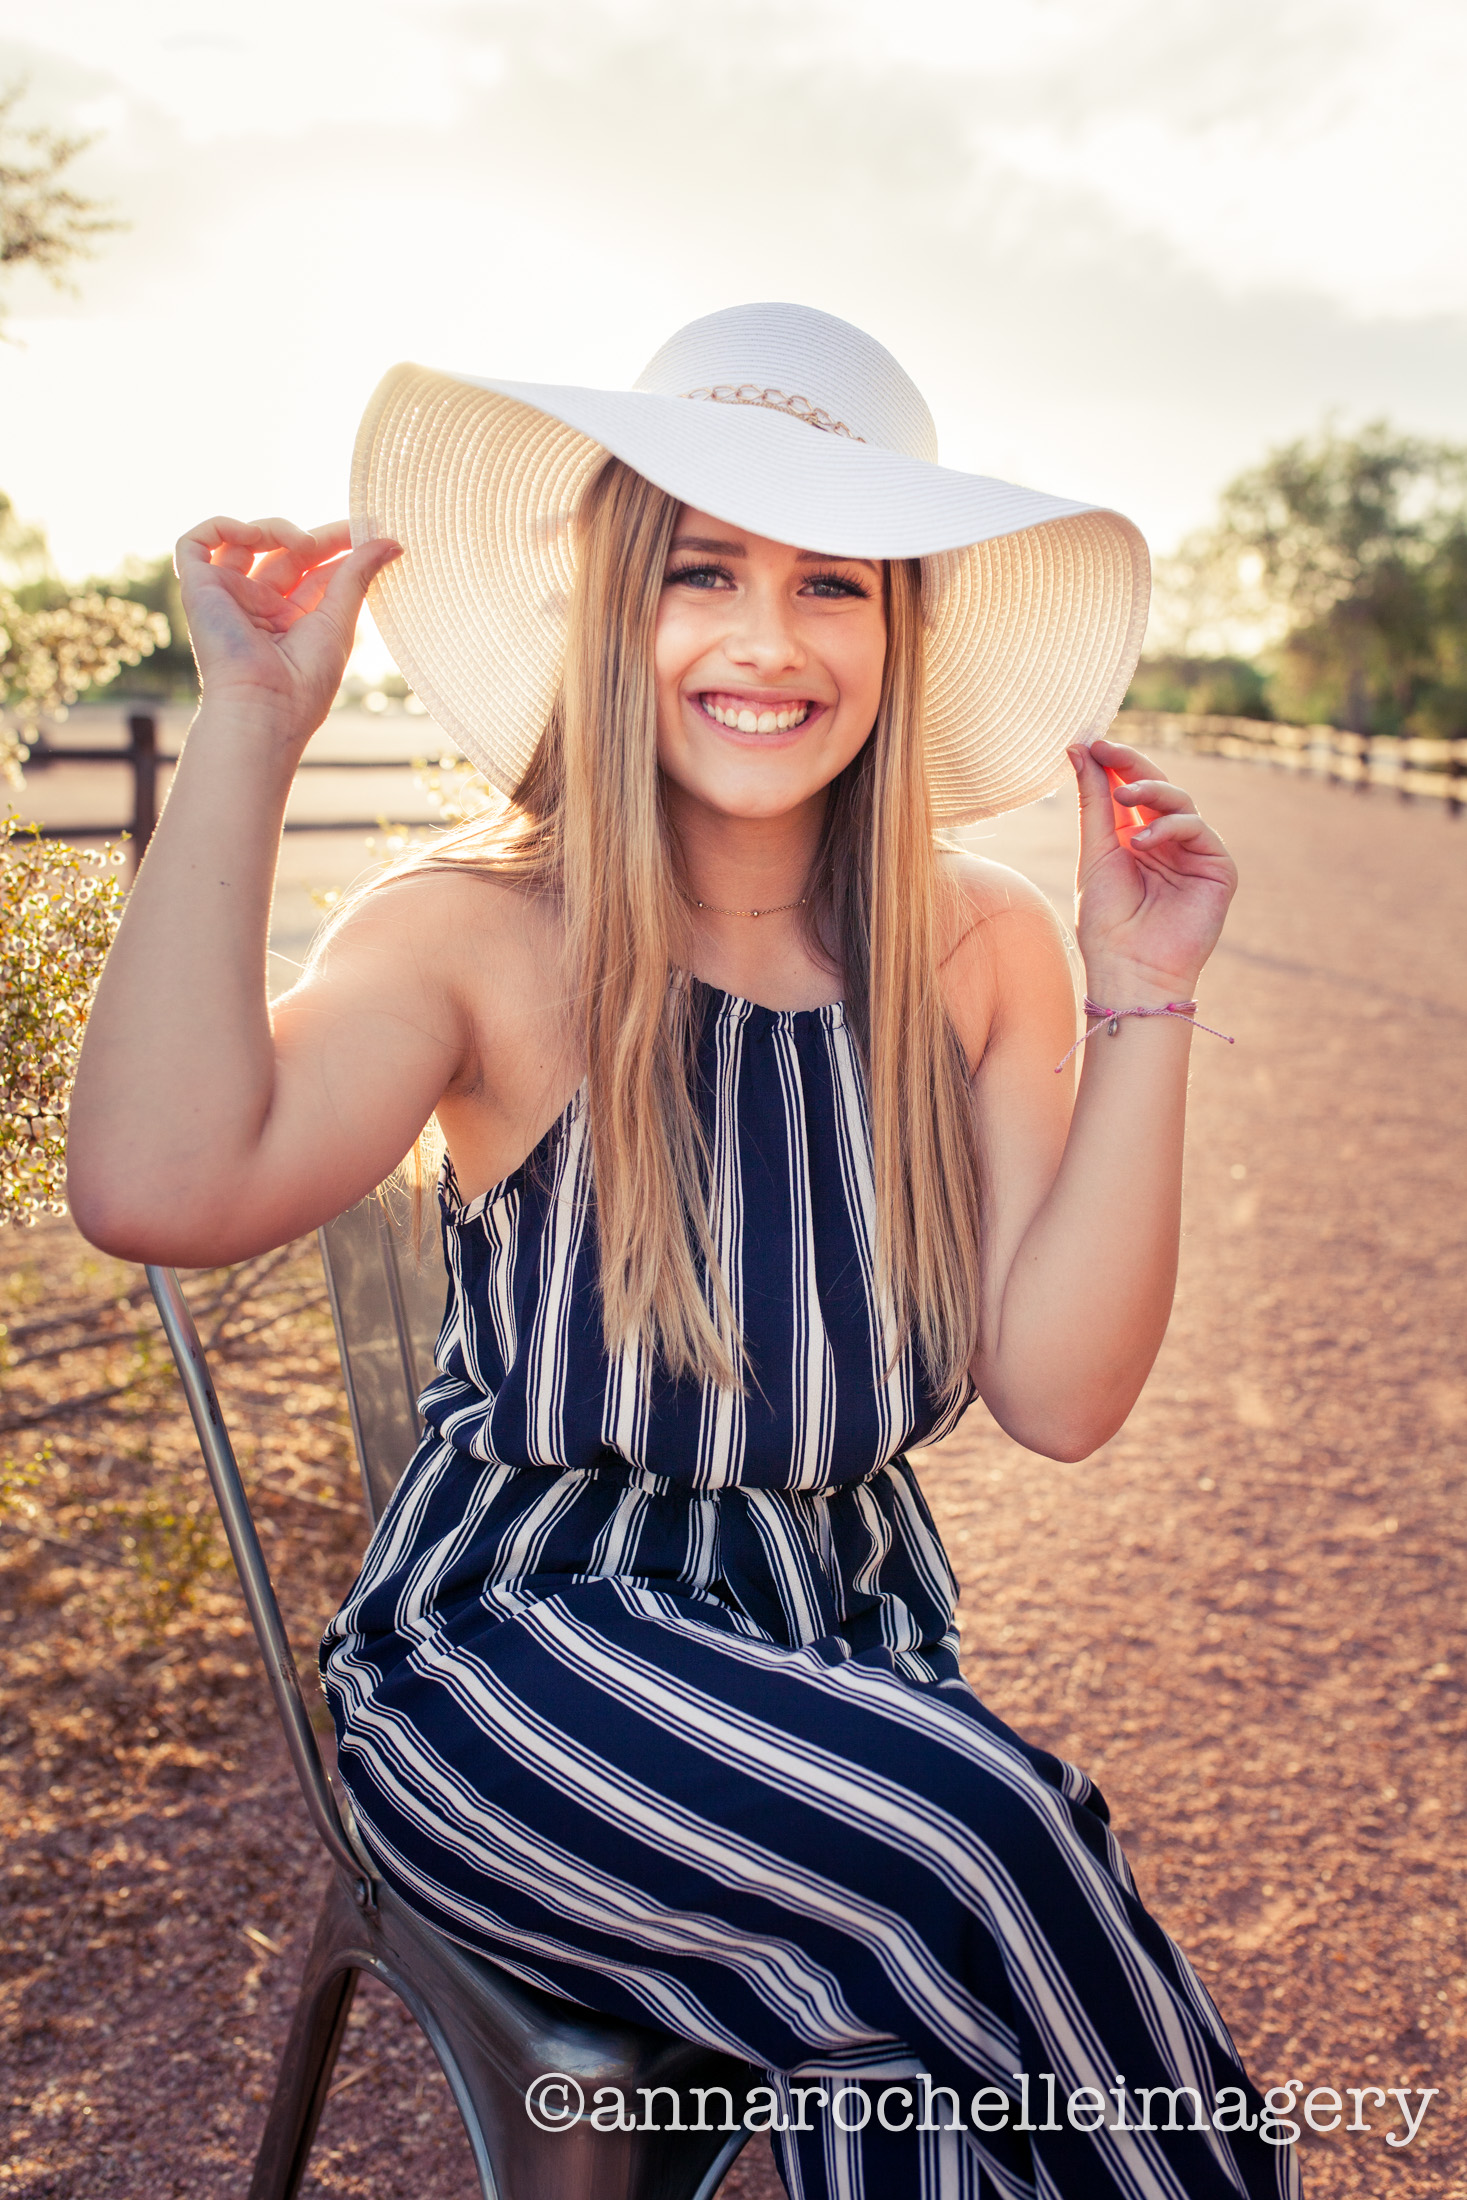 east-valley-girl-senior-hat-wash-anna-rochelle-imagery.jpg